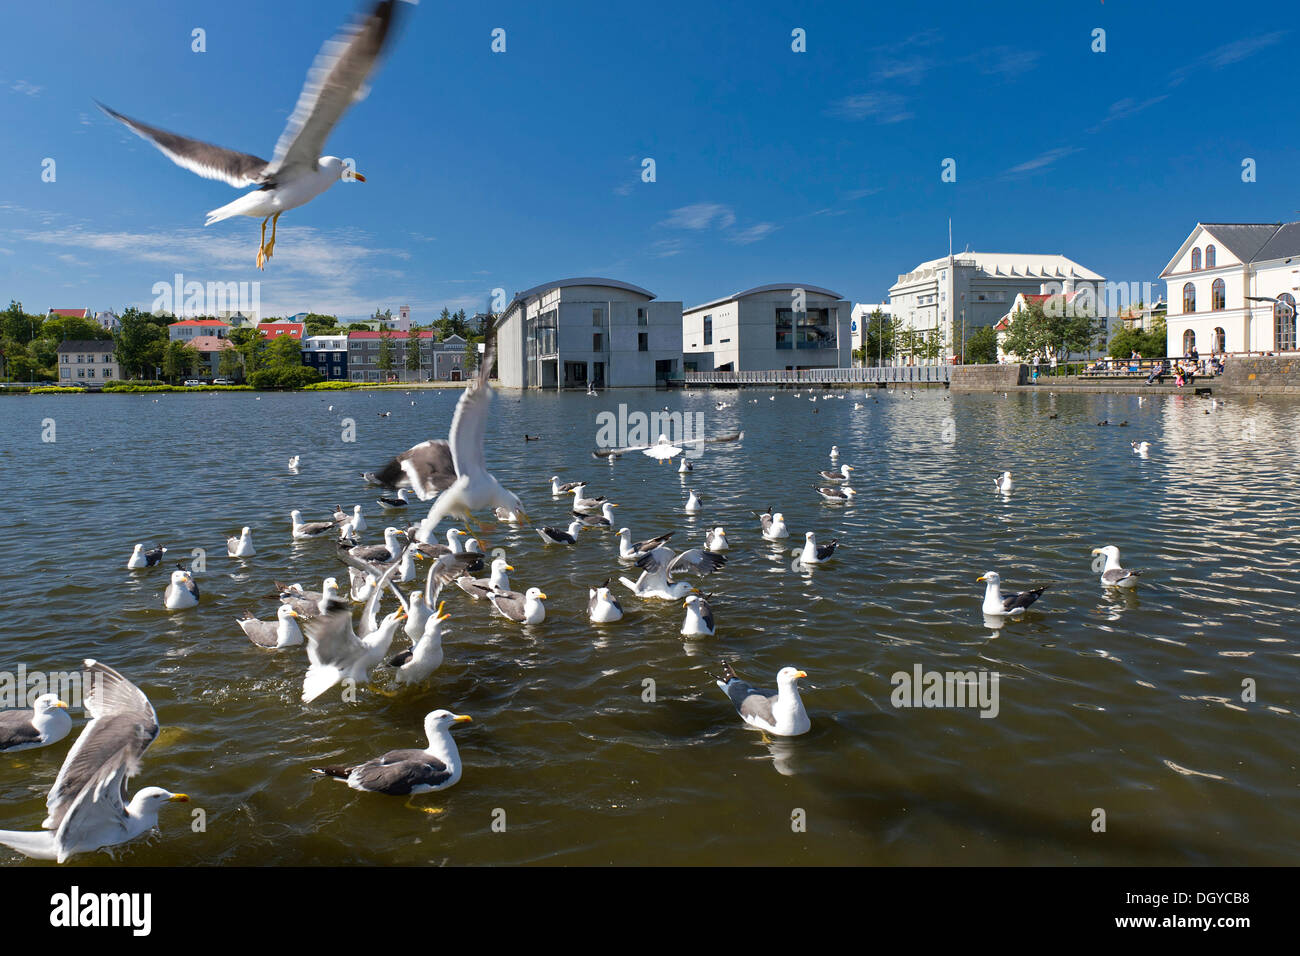 City hall and Tjoernin, city lake in the centre of Reykjavik, Iceland, Europe - Stock Image